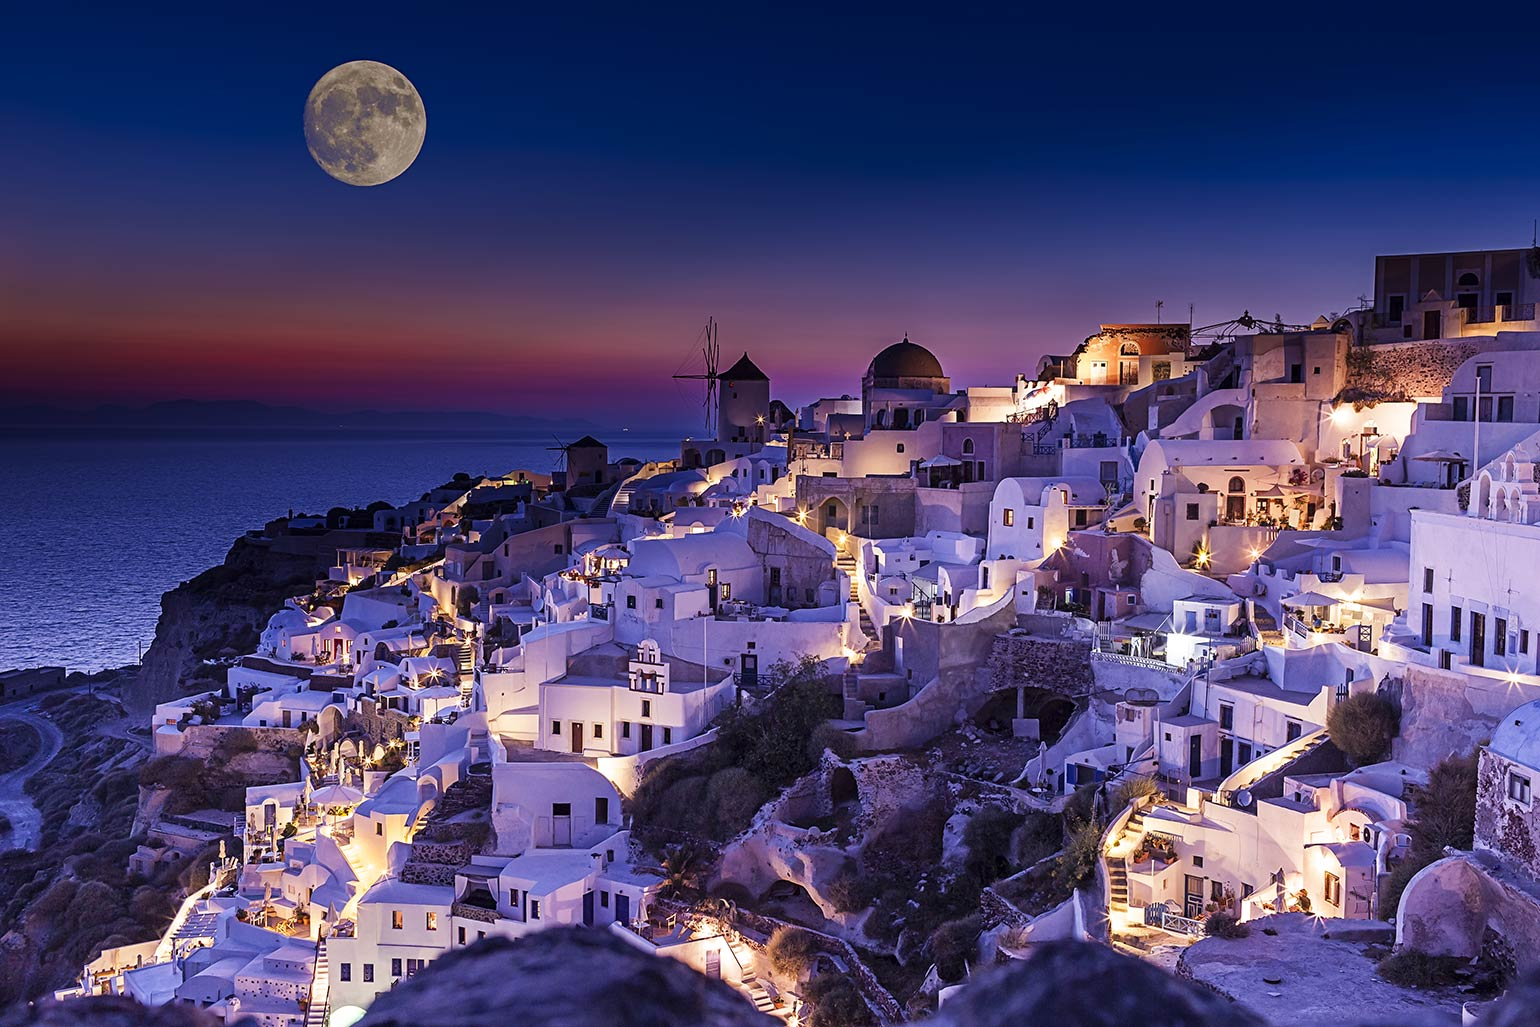 Santorini Greece Wallpaper At Night HD Wallpaper Background Images 1540x1027